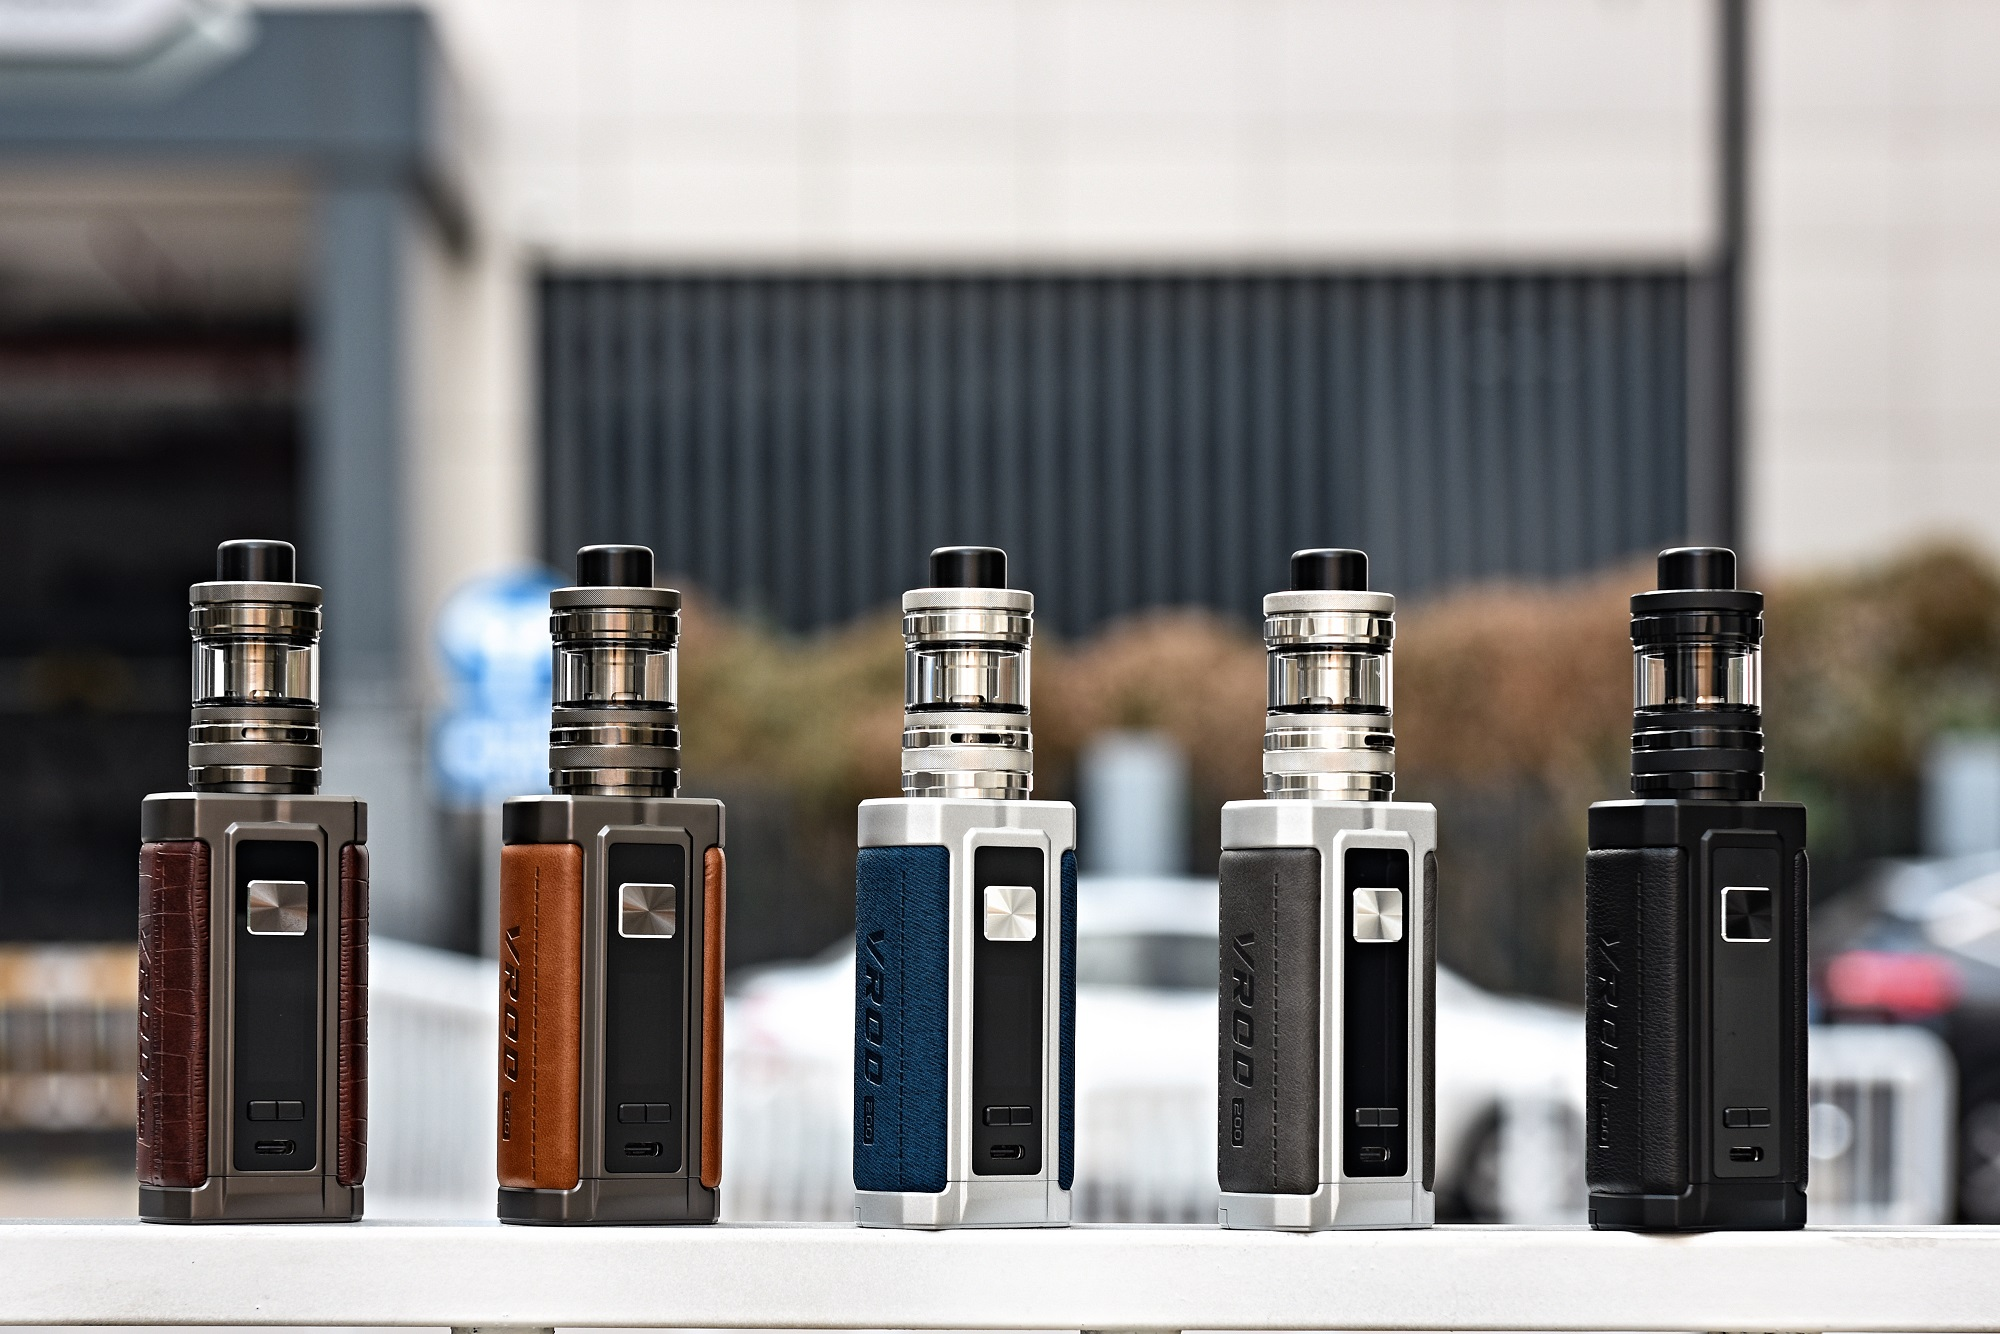 Aspire Vrod 200 Kit in five different colors.